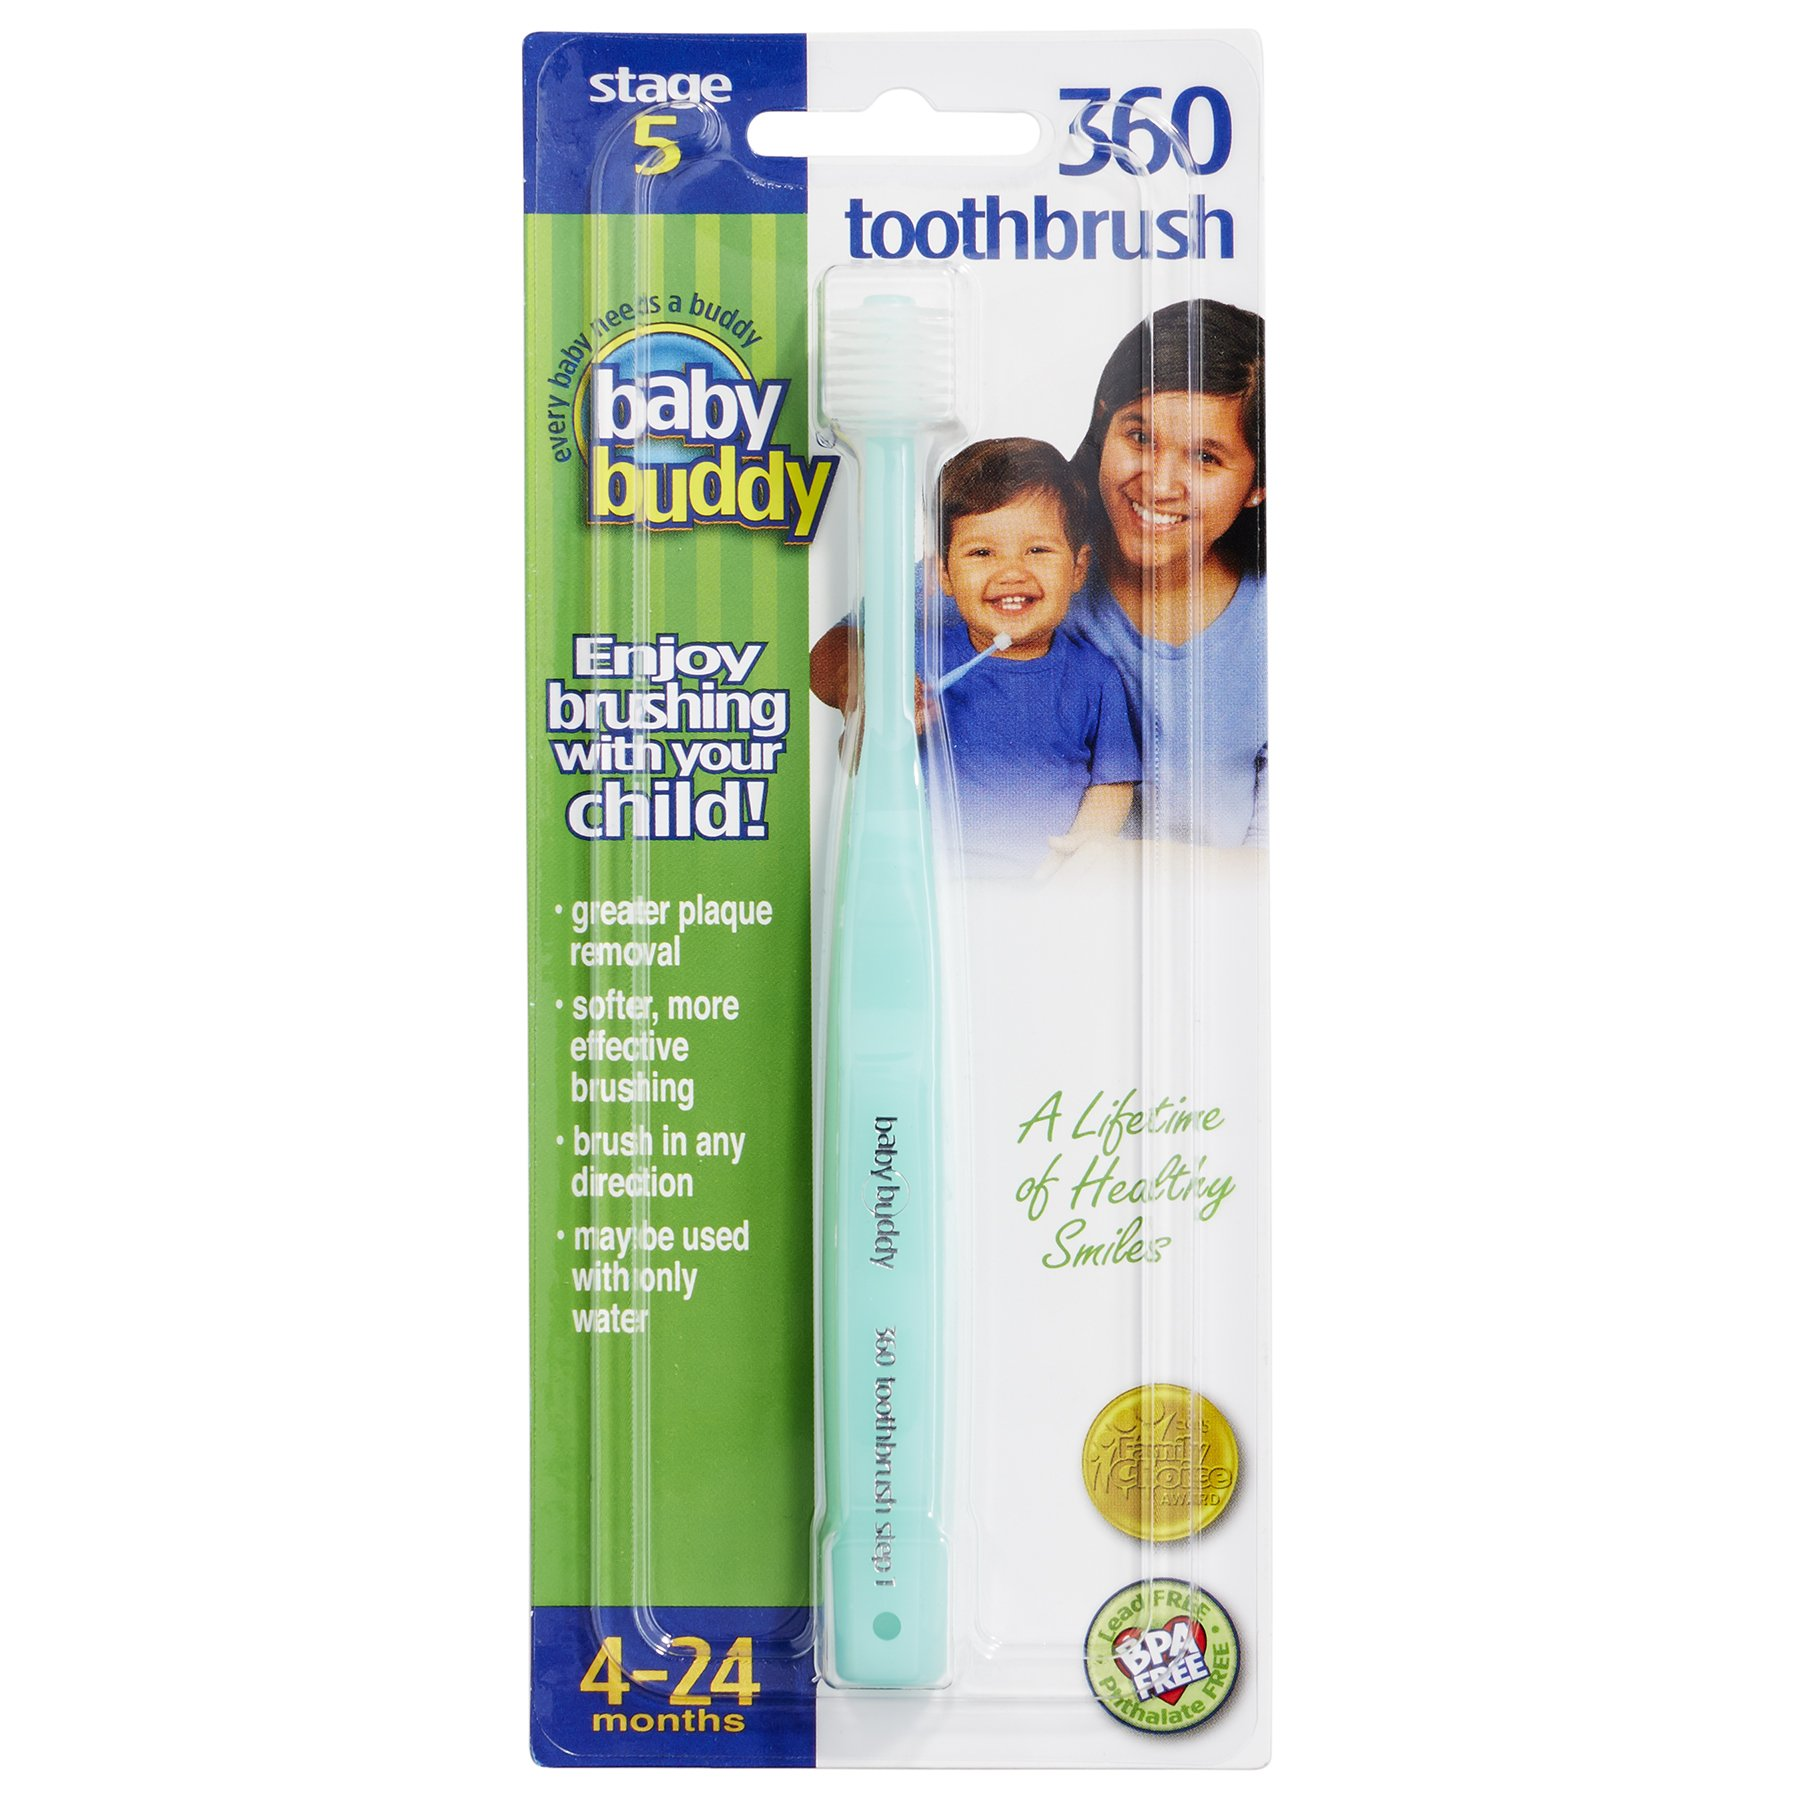 Baby Buddy Brilliant Baby Toothbrush by For Ages 4-24 Months, BPA Free Super-Fine Micro Bristles Clean All-Around Mouth, Kids Love Them, Mint, 1 Count